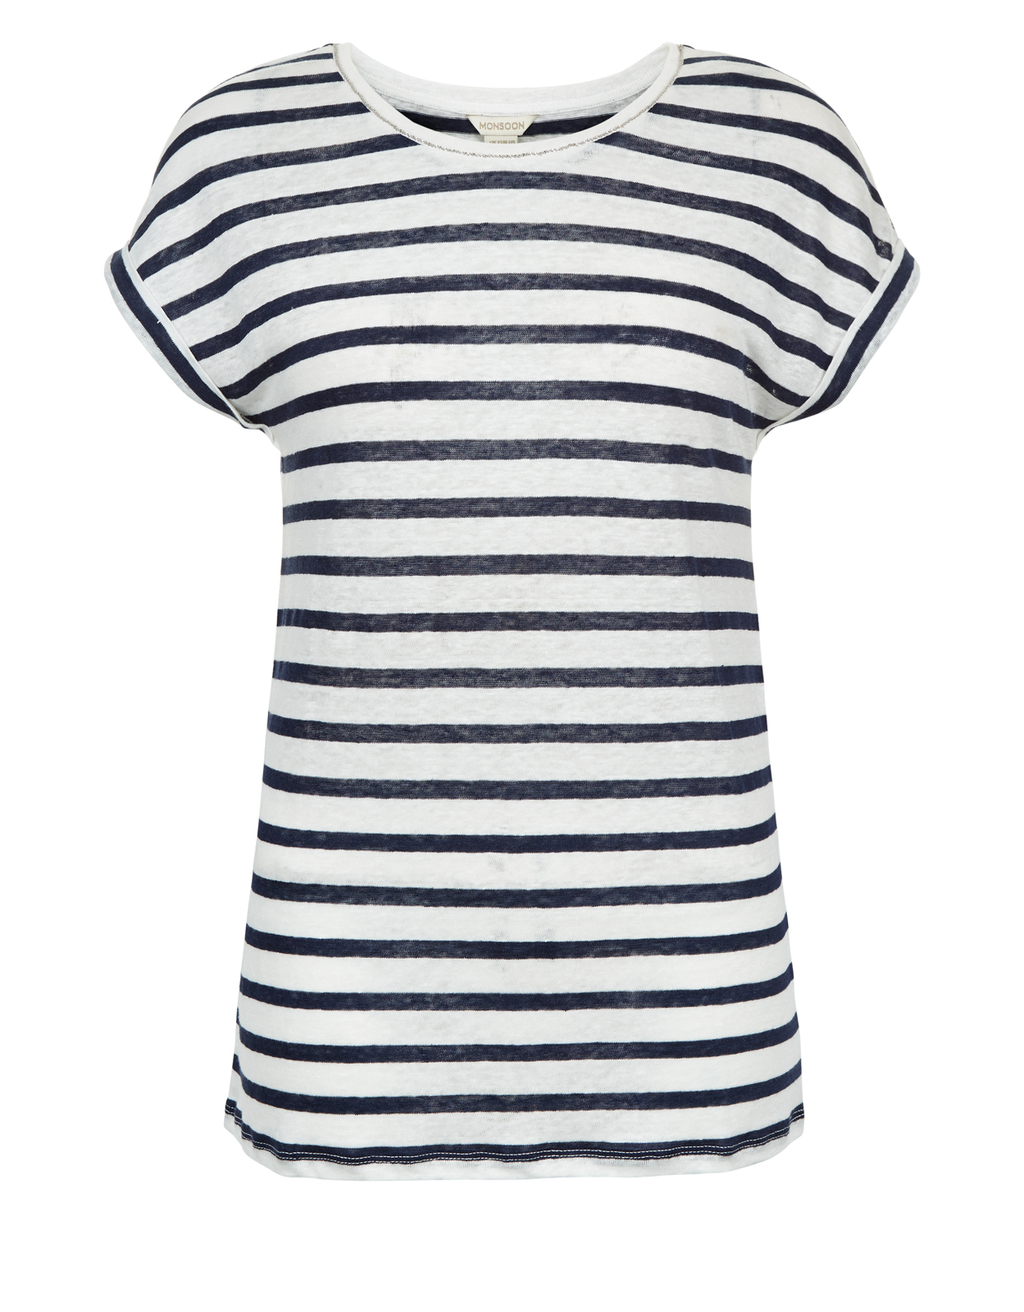 Nahlah Stripe T Shirt - neckline: round neck; pattern: horizontal stripes; style: t-shirt; predominant colour: navy; occasions: casual; length: standard; fibres: linen - 100%; fit: body skimming; sleeve length: short sleeve; sleeve style: standard; pattern type: fabric; texture group: jersey - stretchy/drapey; pattern size: big & busy (top); season: s/s 2016; wardrobe: basic